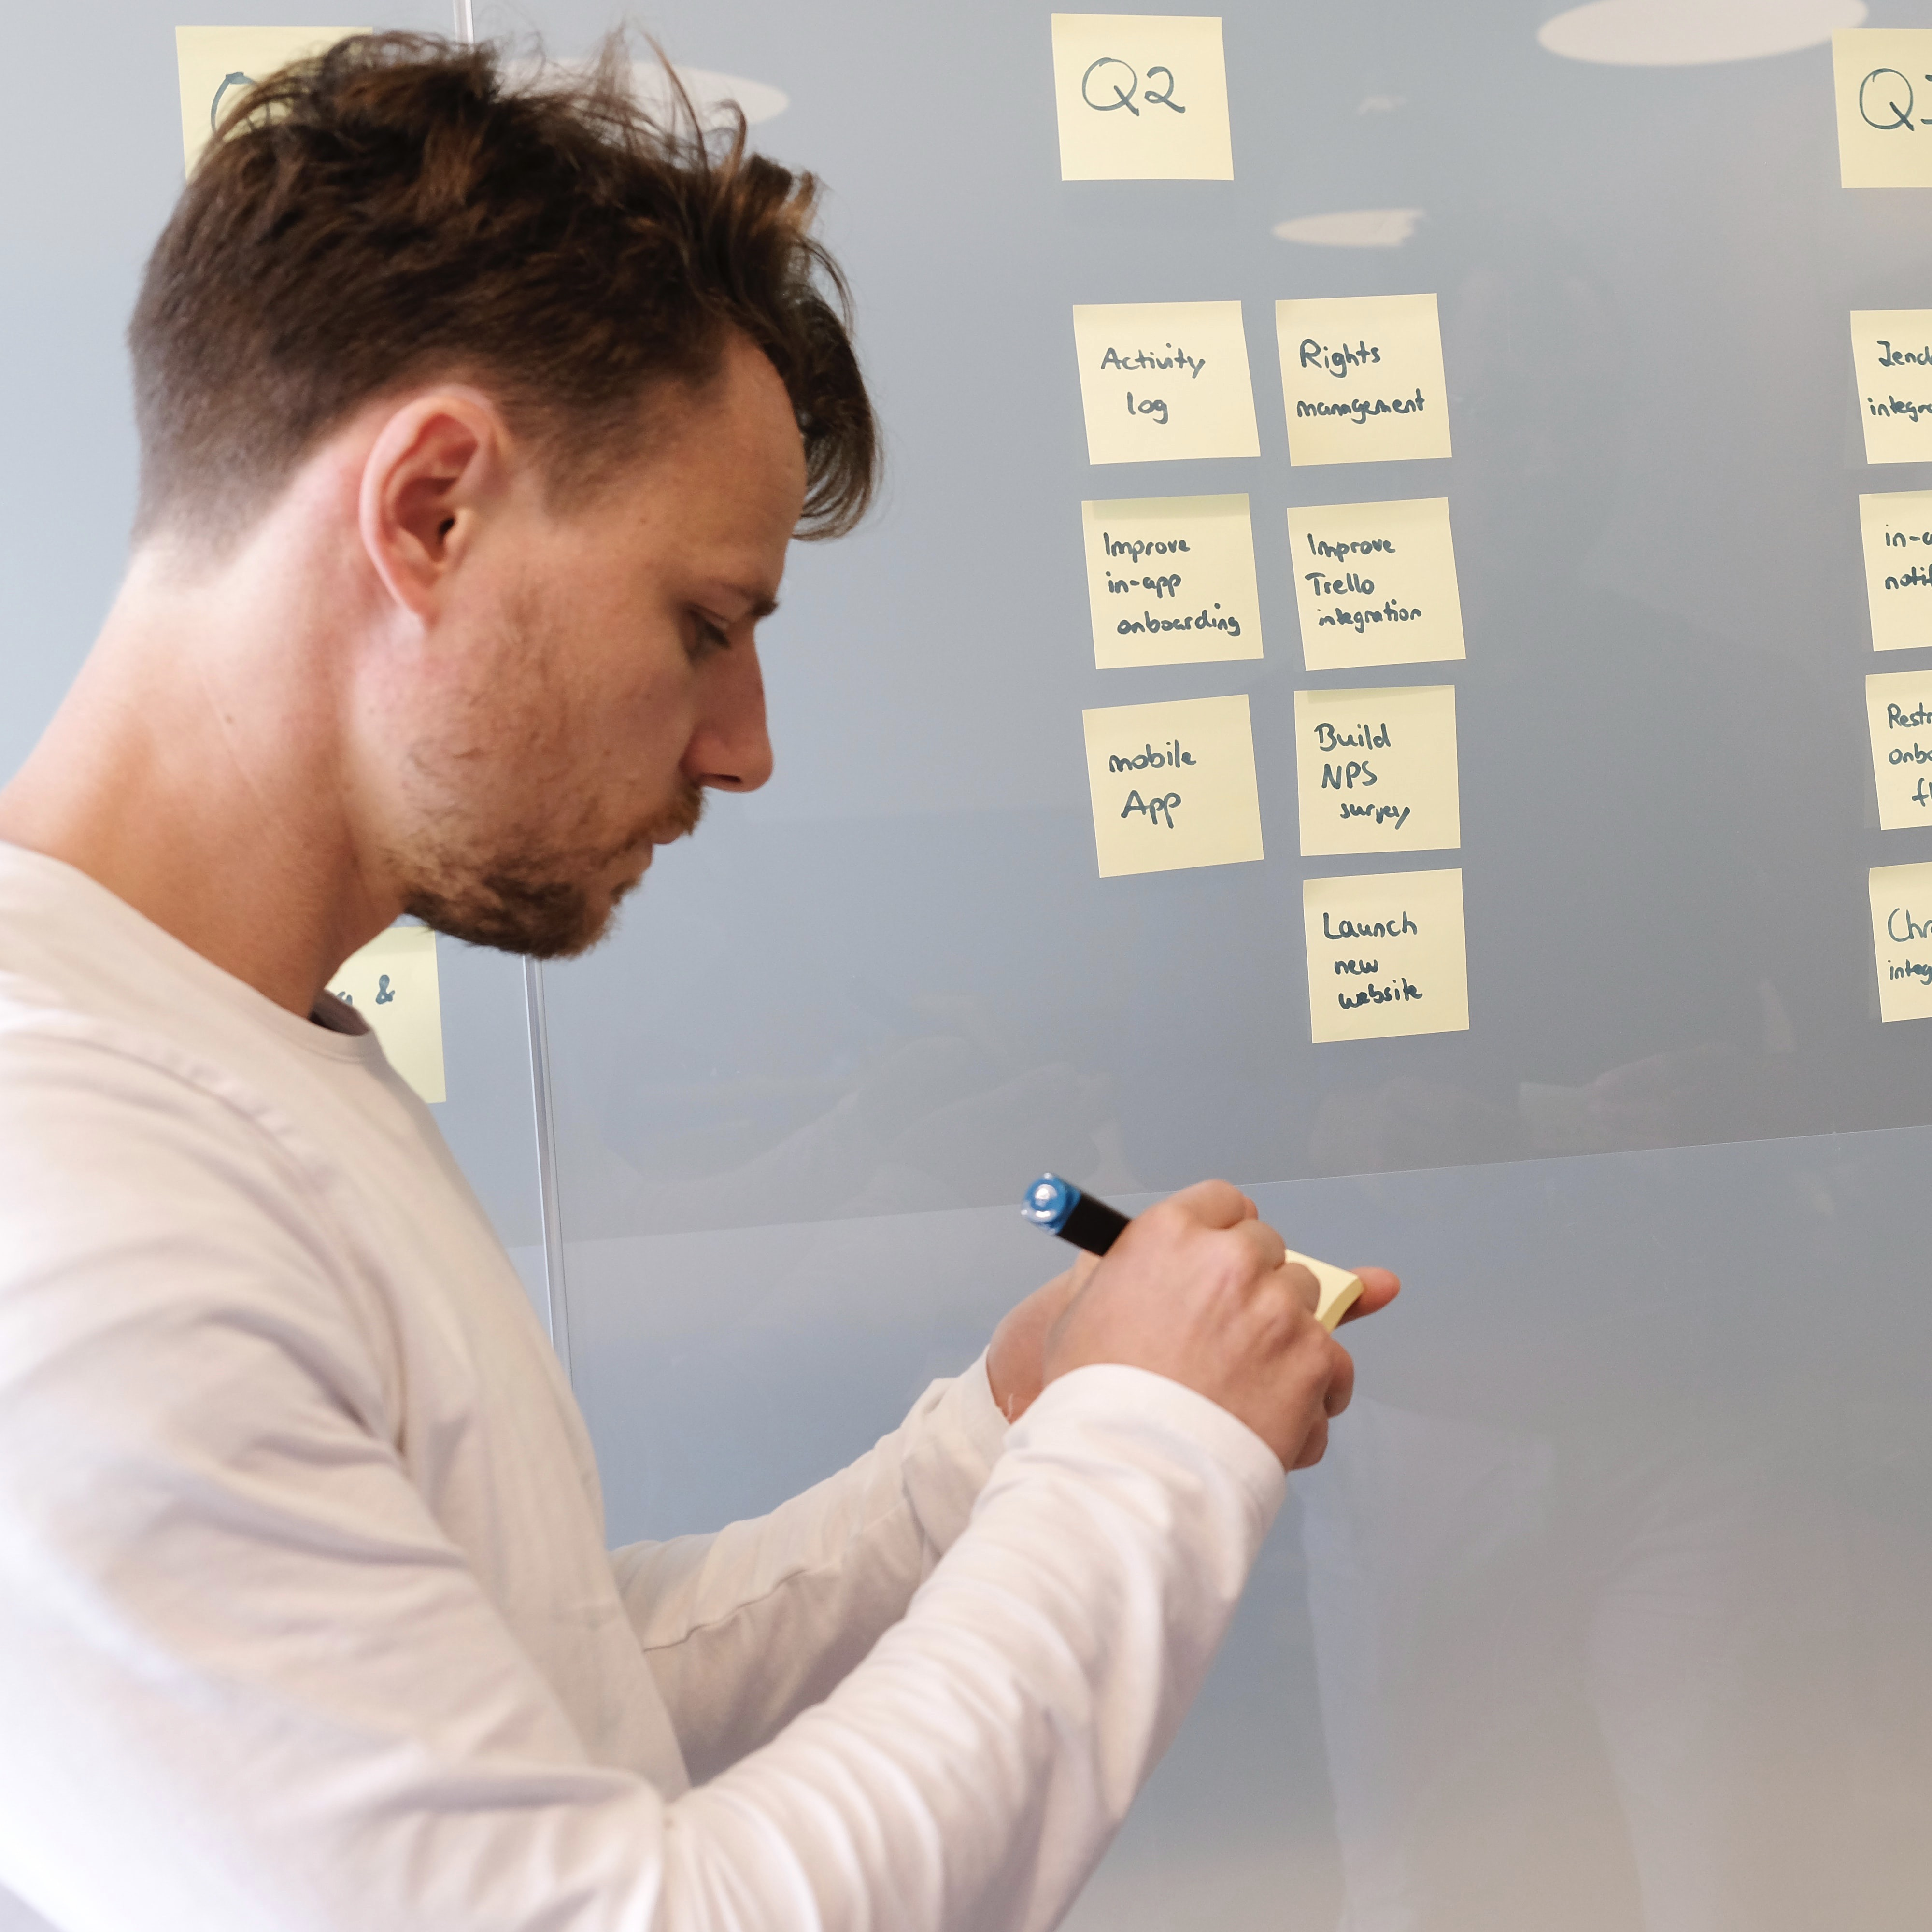 Photo of product manager skills needed to get a great job